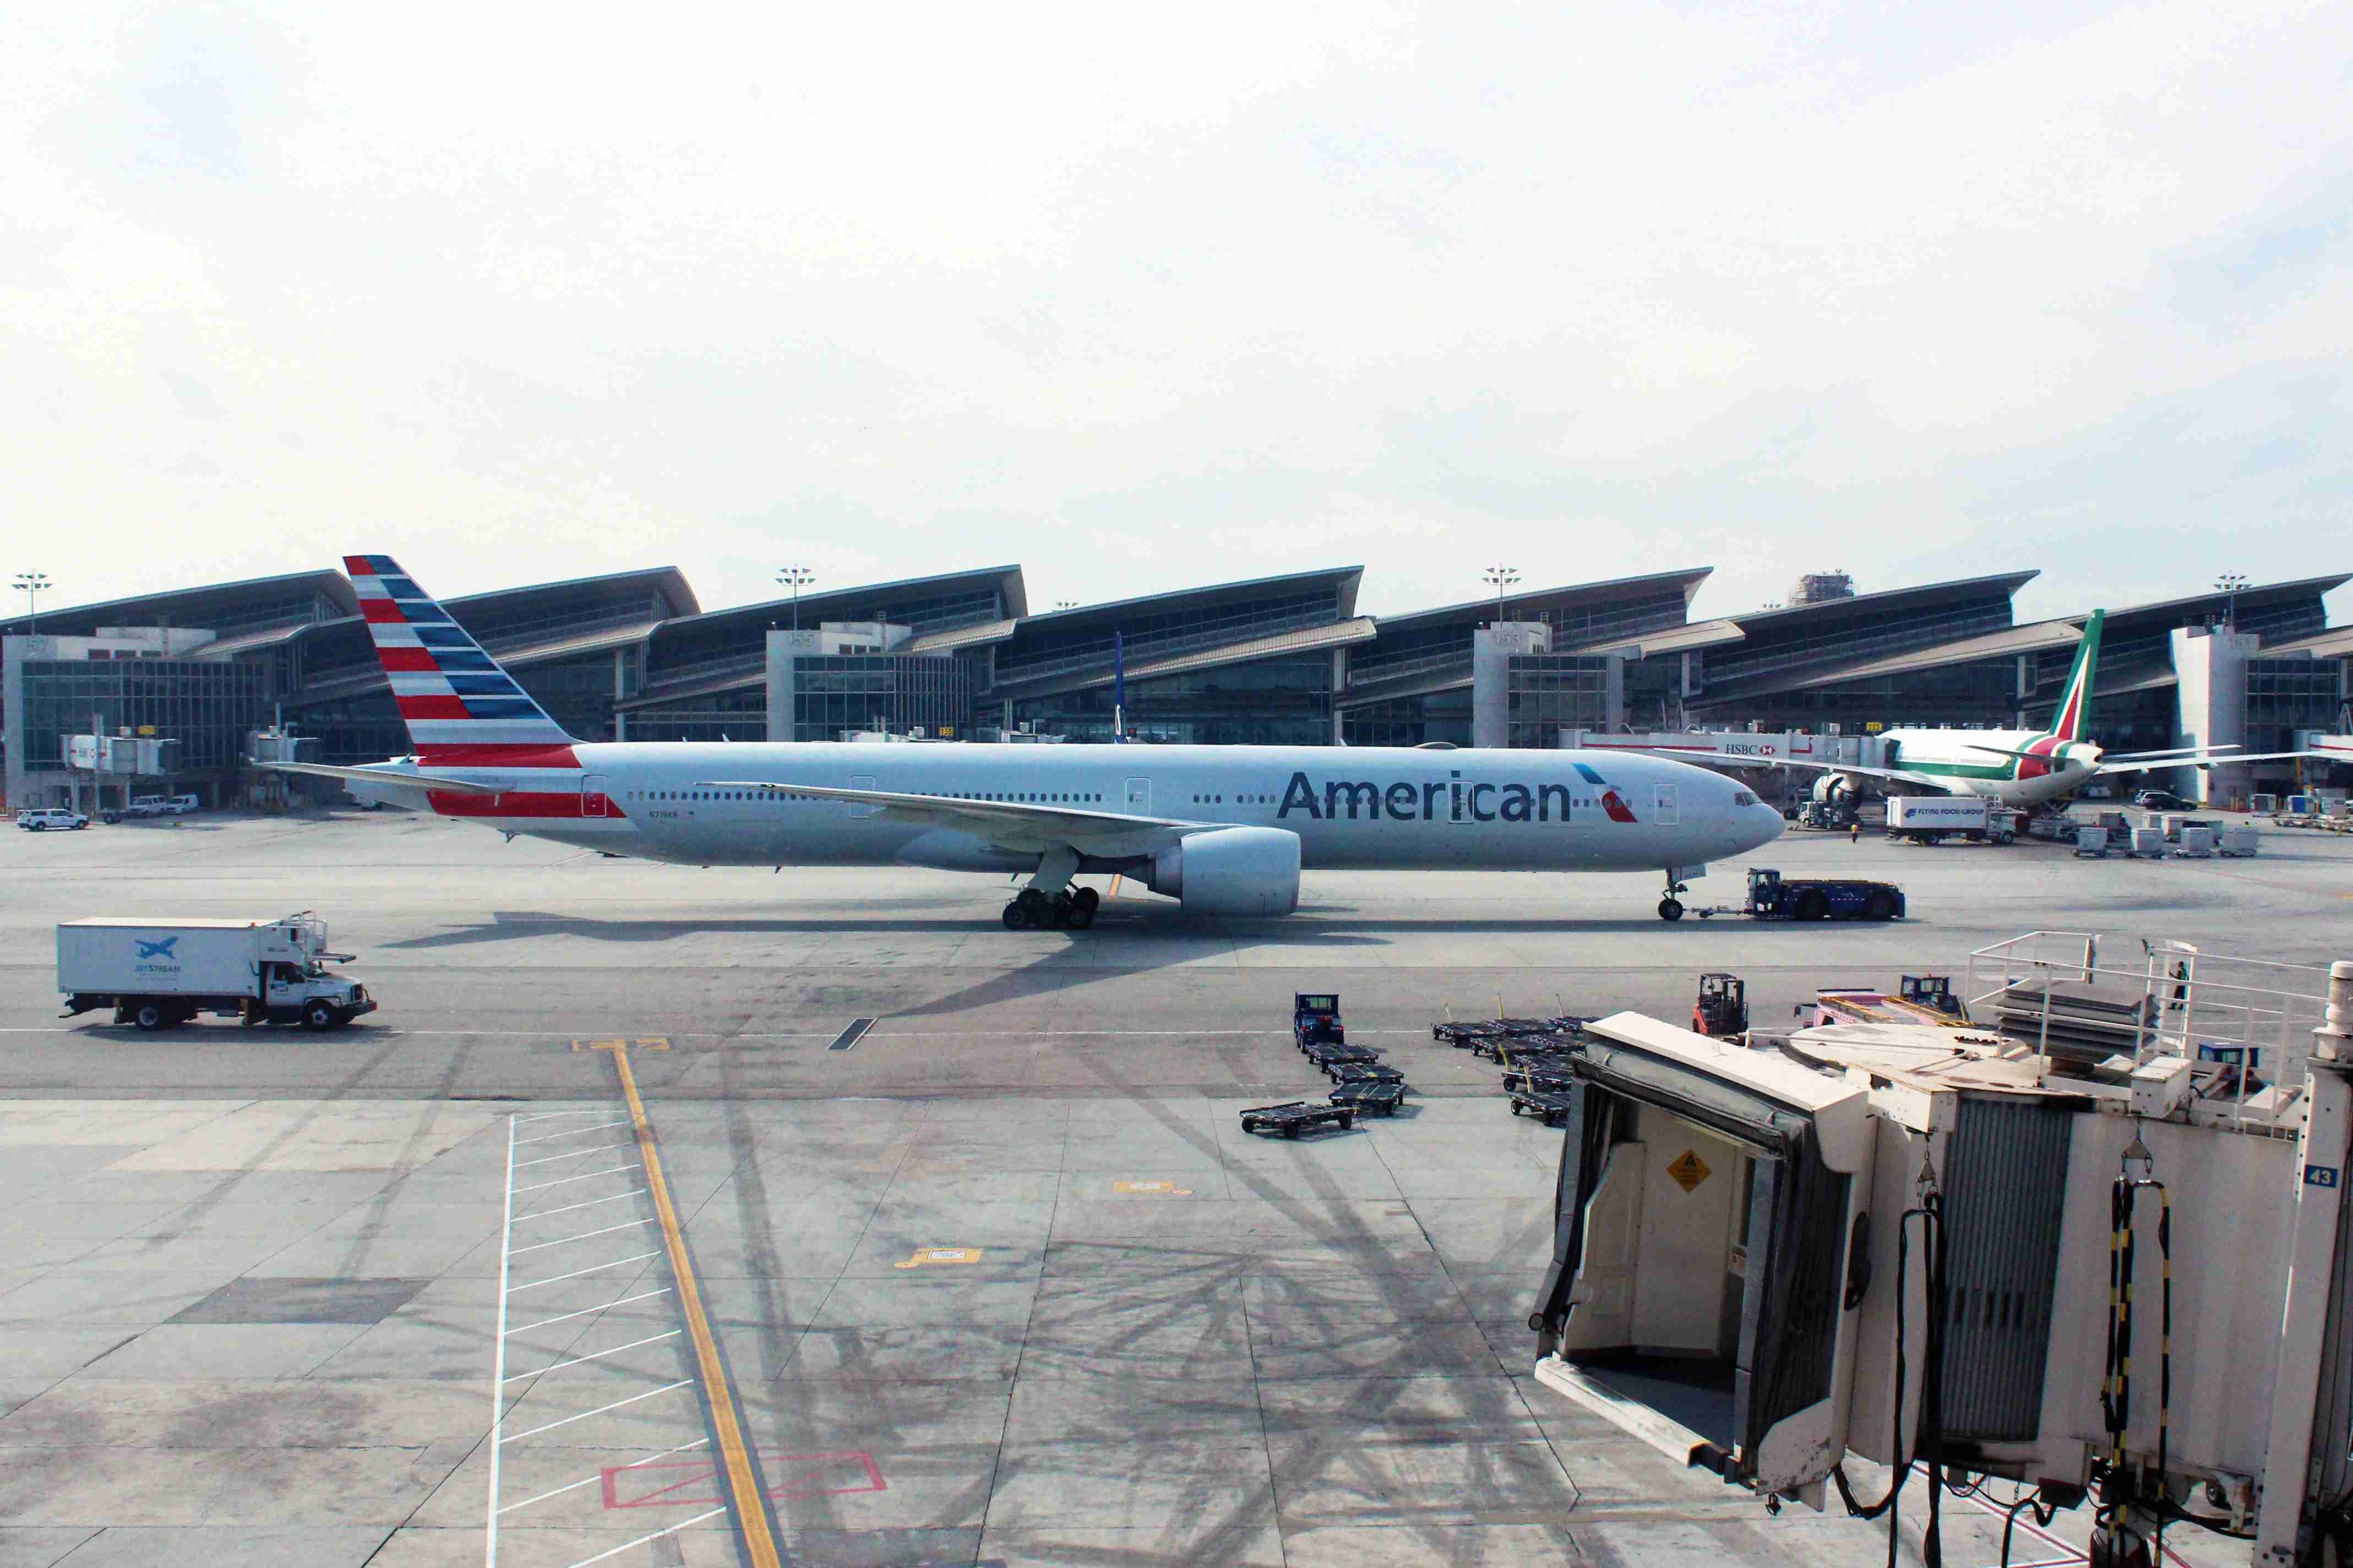 American Airlines pushed back, and now communicating with the gorund contorllers in the tower.